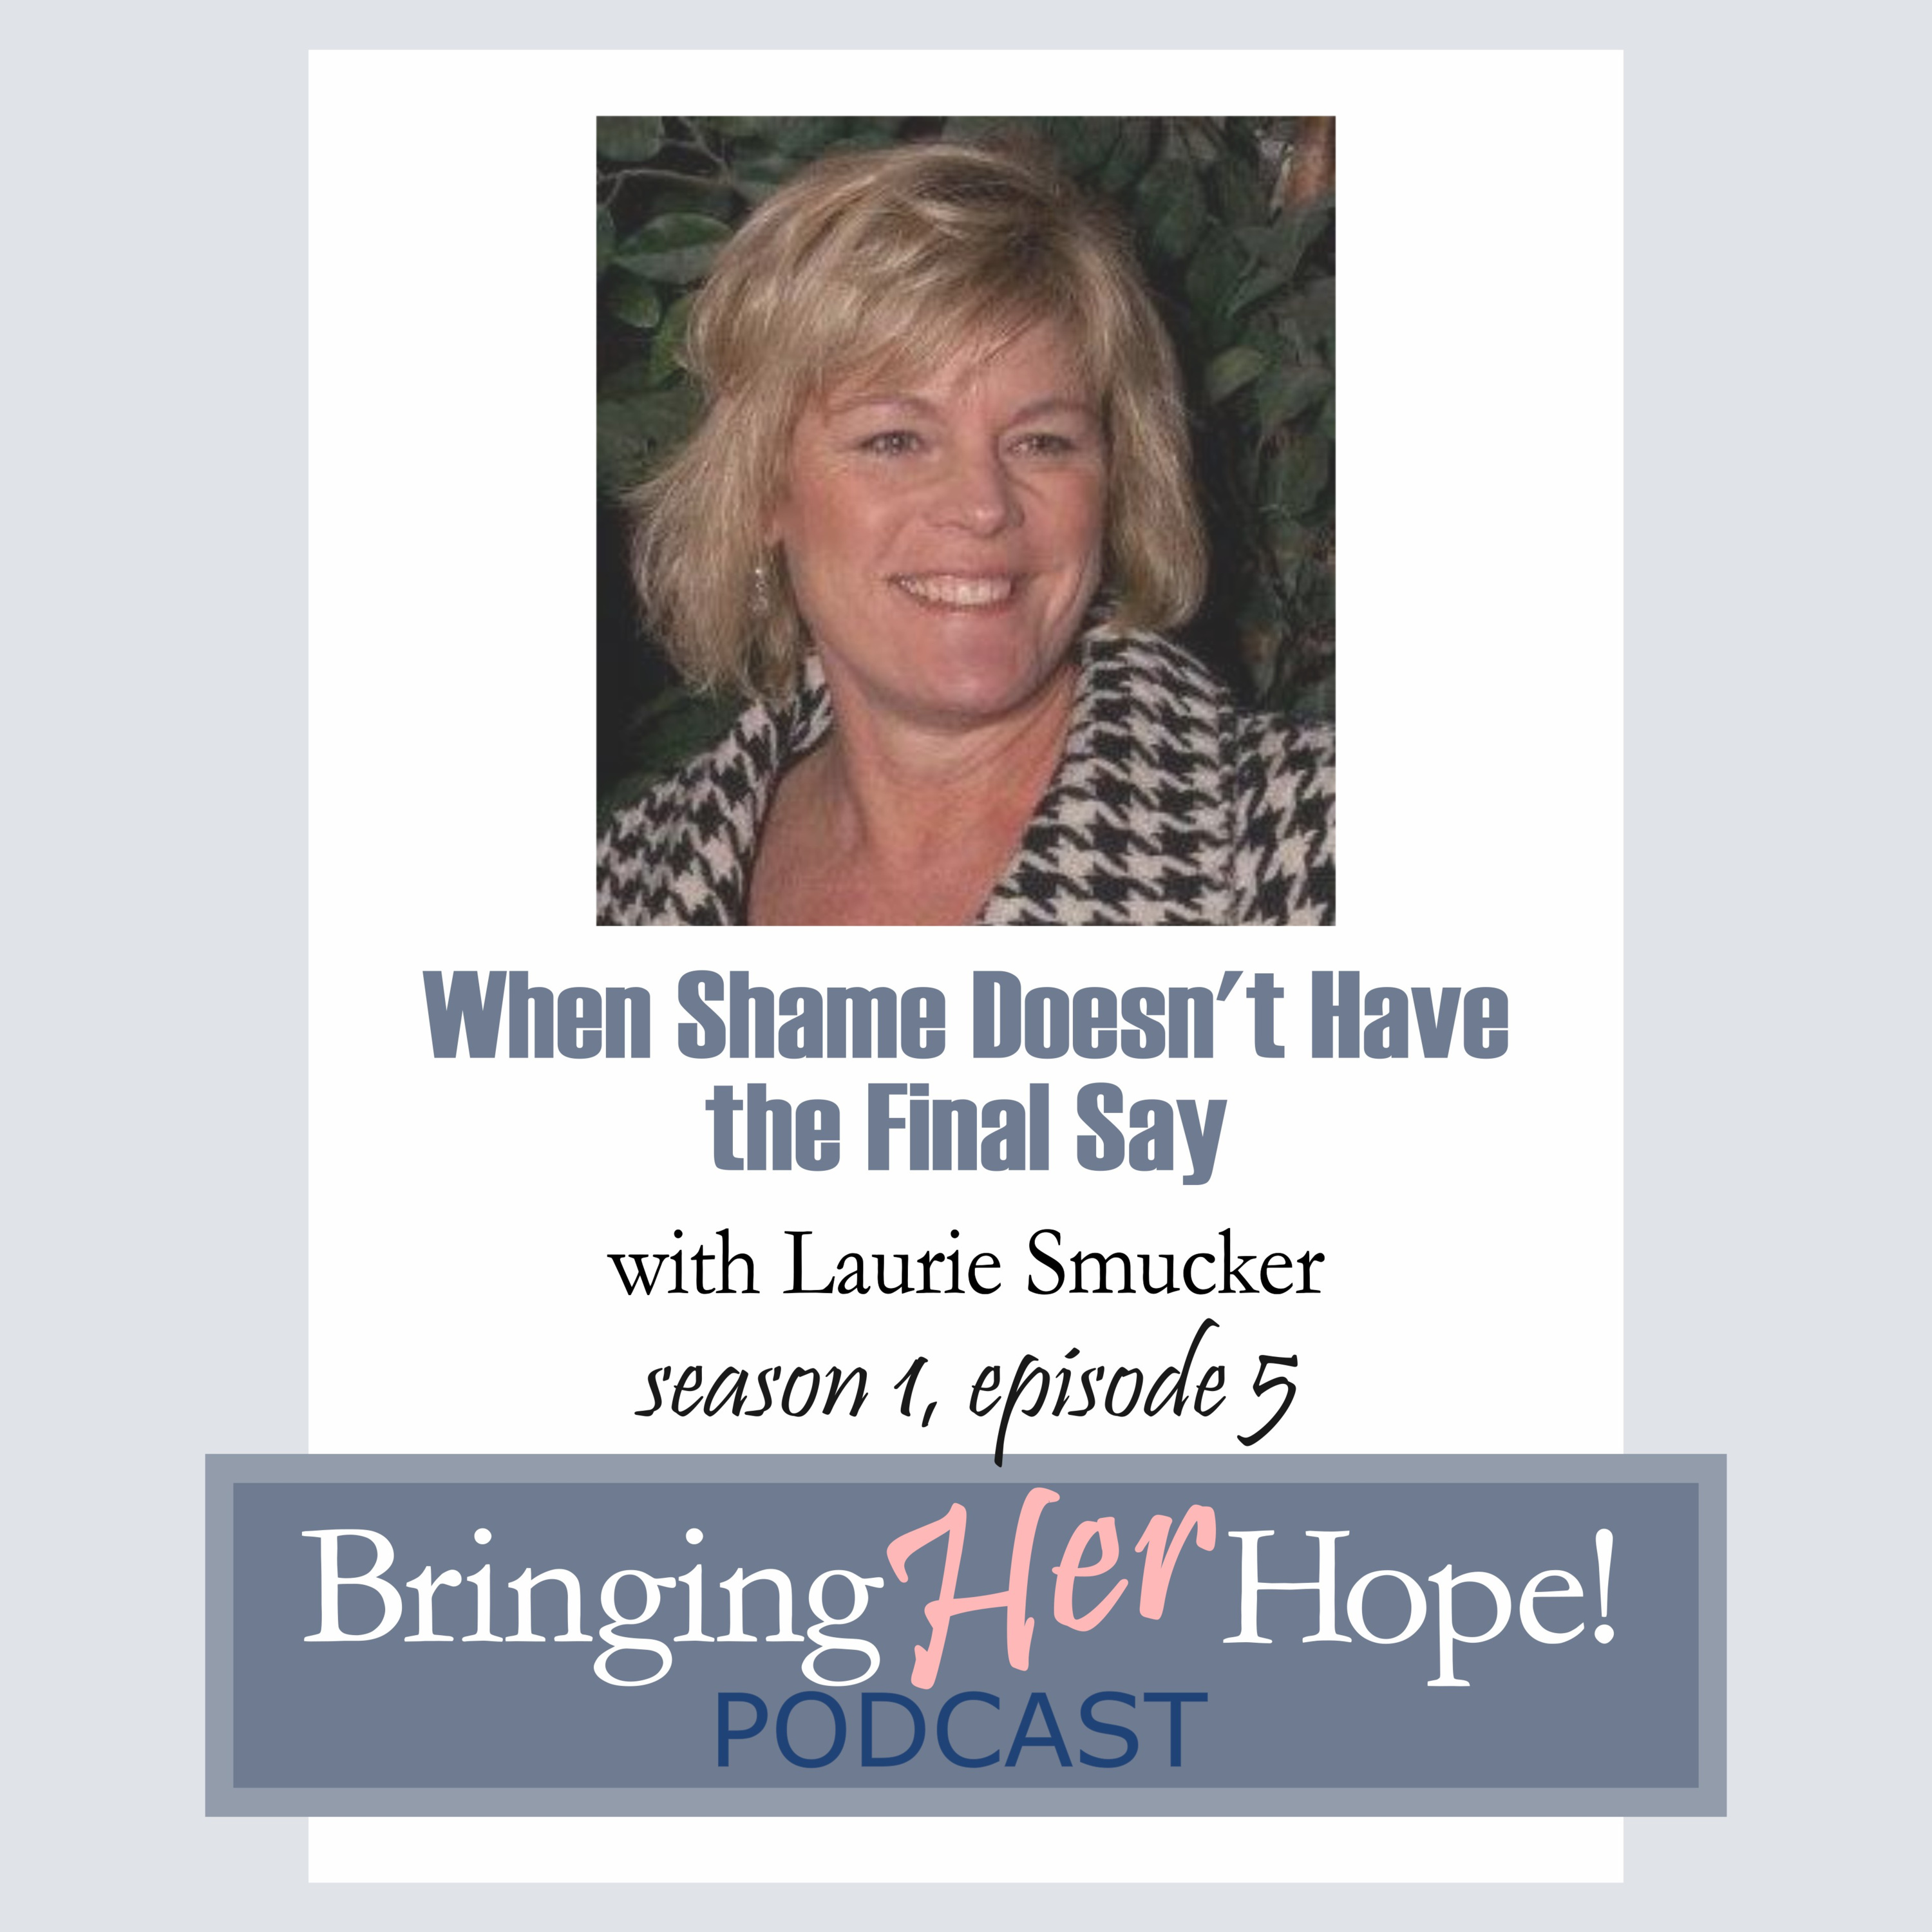 Episode 5: When shame doesn't have the final say with special guest Laurie Smucker